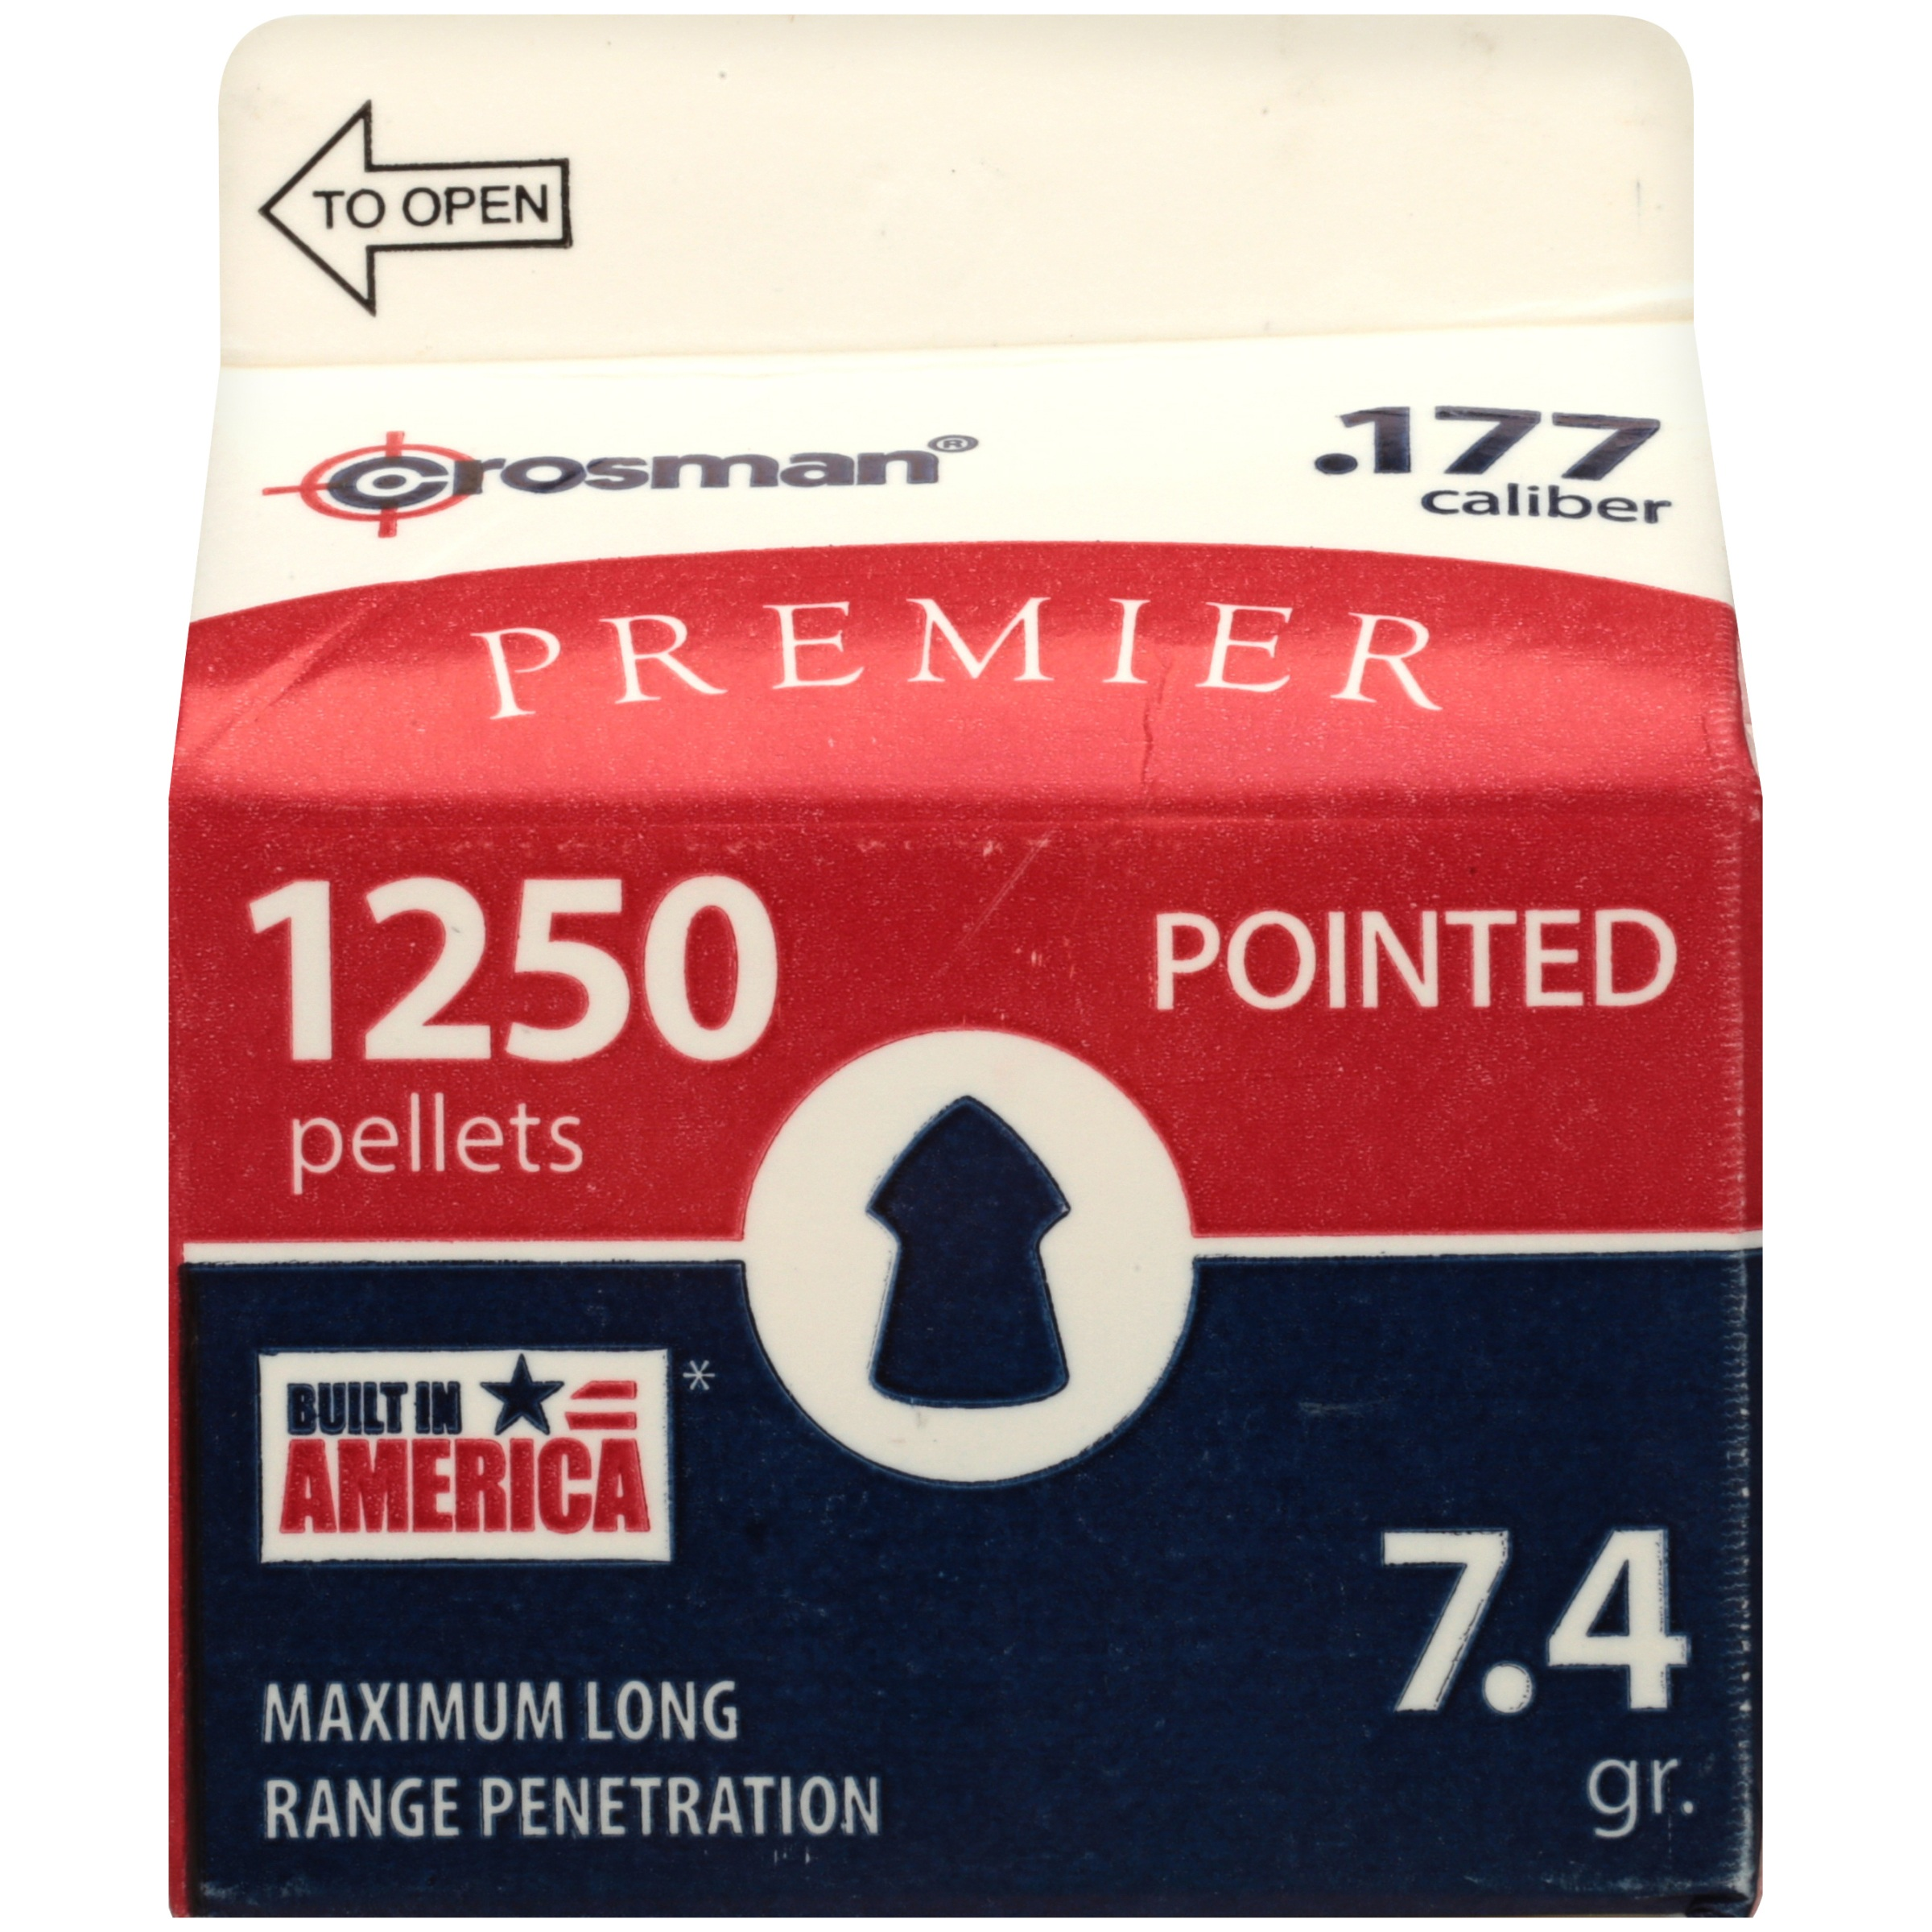 Crosman Pointed Pellets 1250 ct P1250